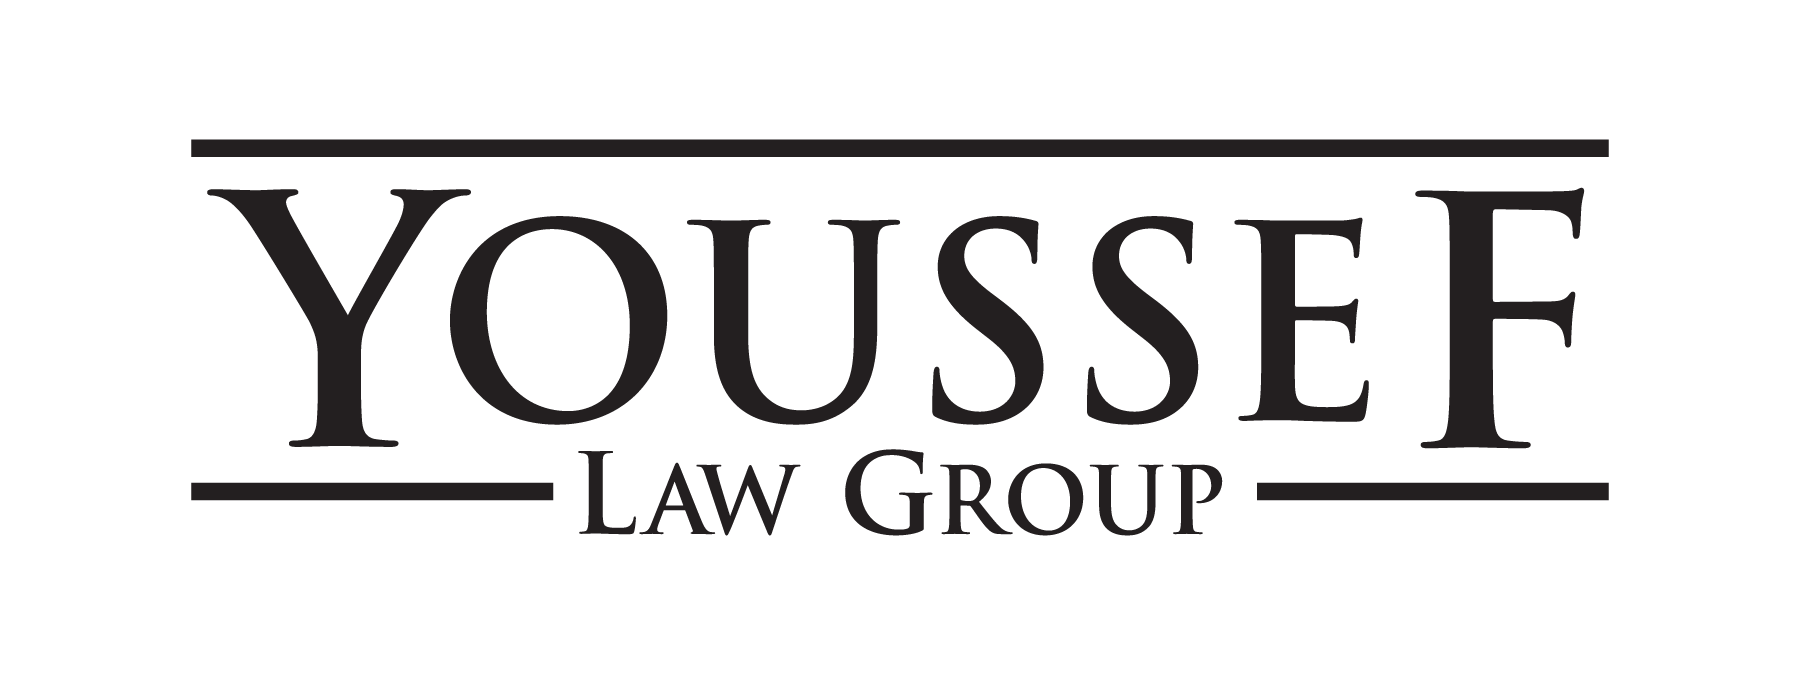 Youssef Law Group